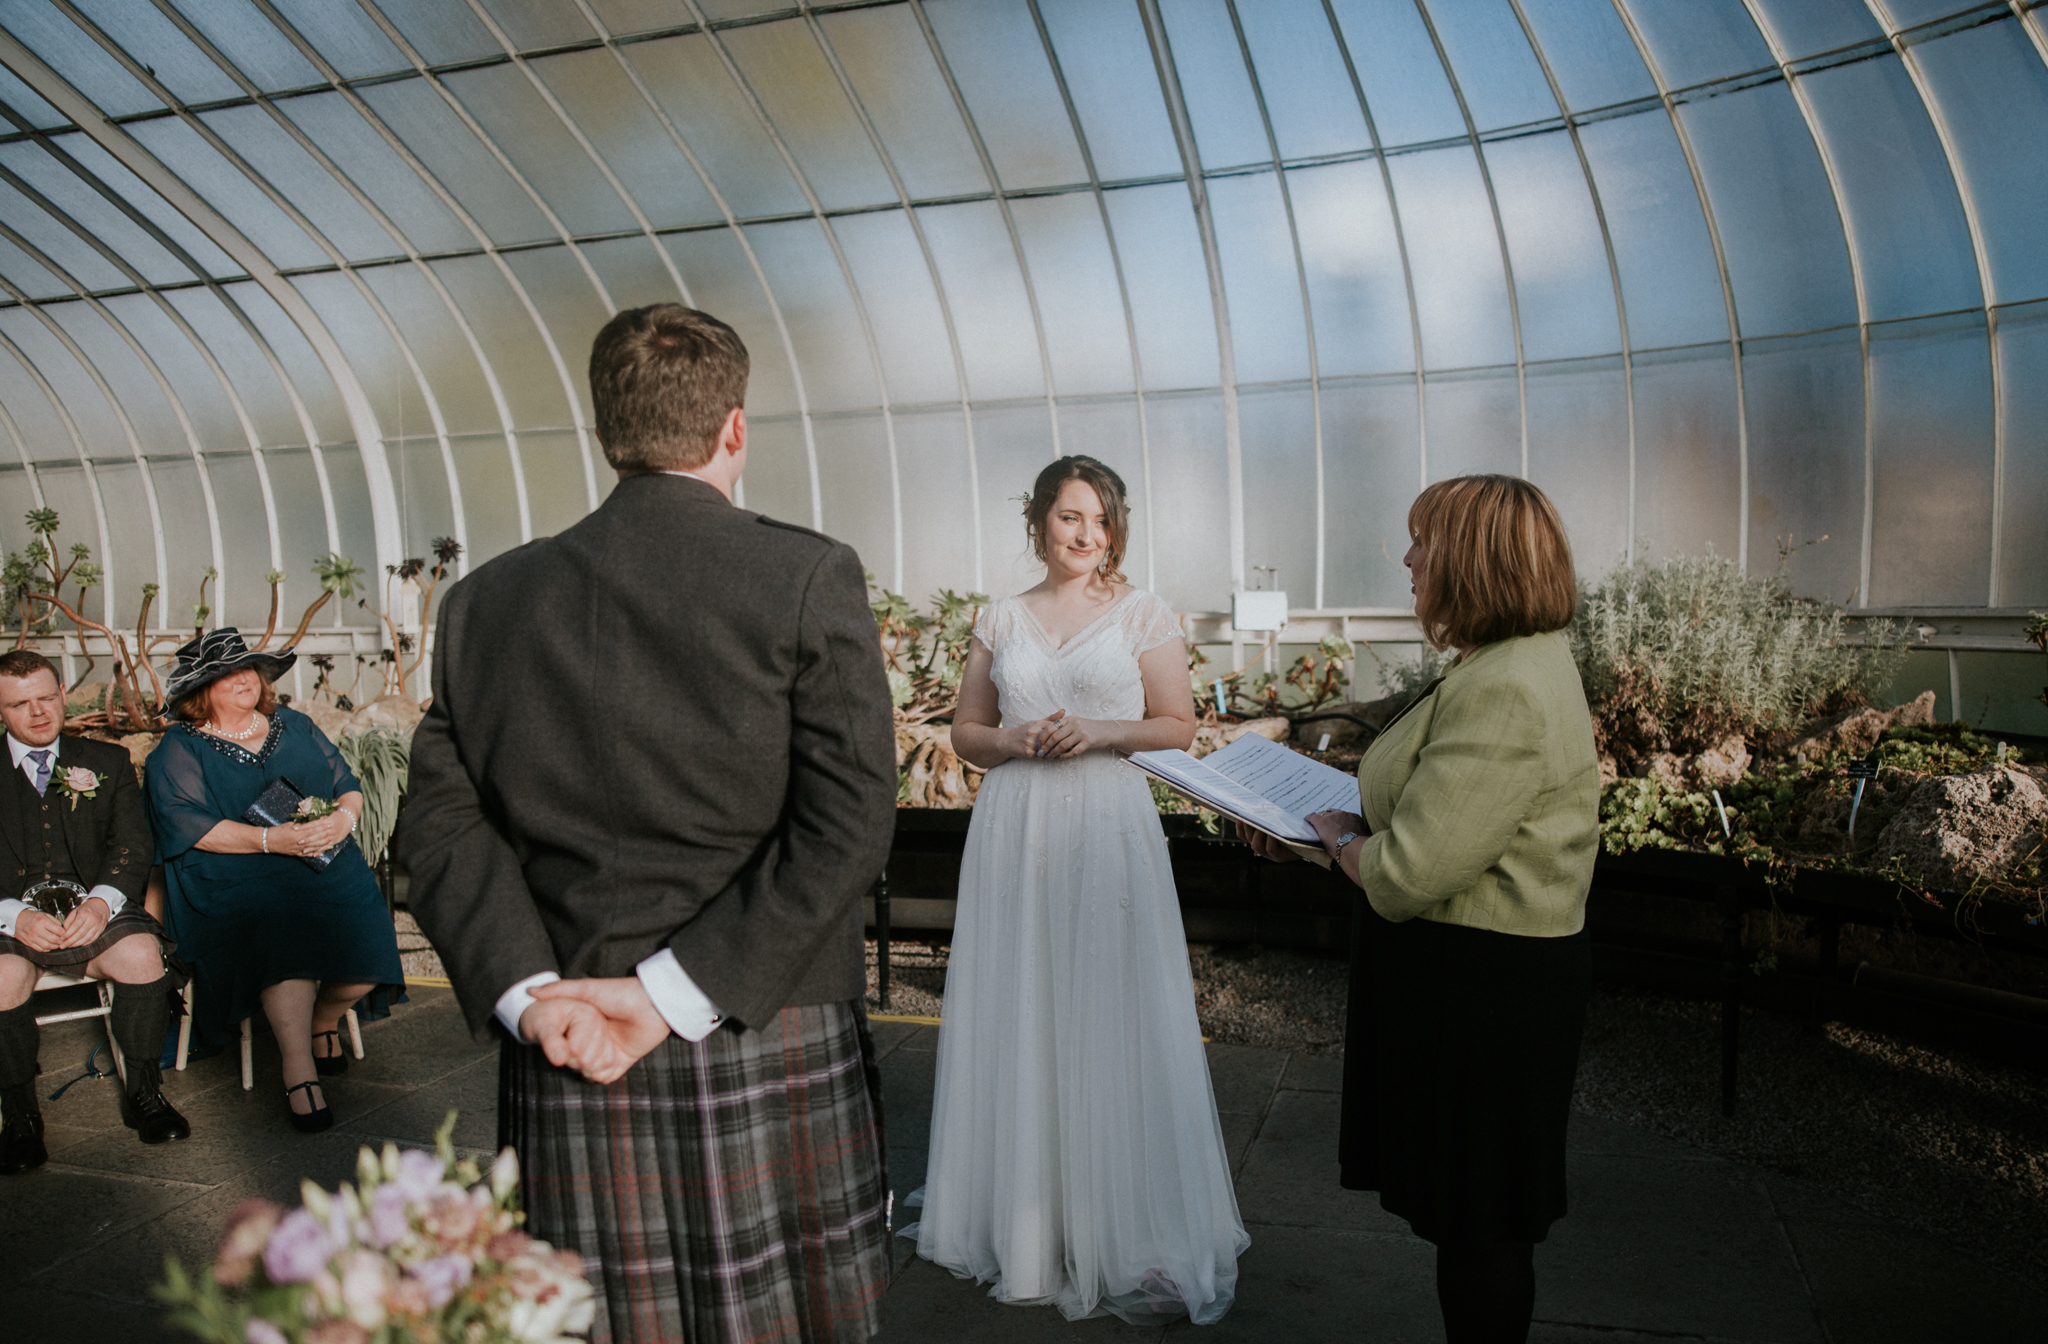 Cinematic style wedding photography in Glasgow, Edinburgh & Scotland